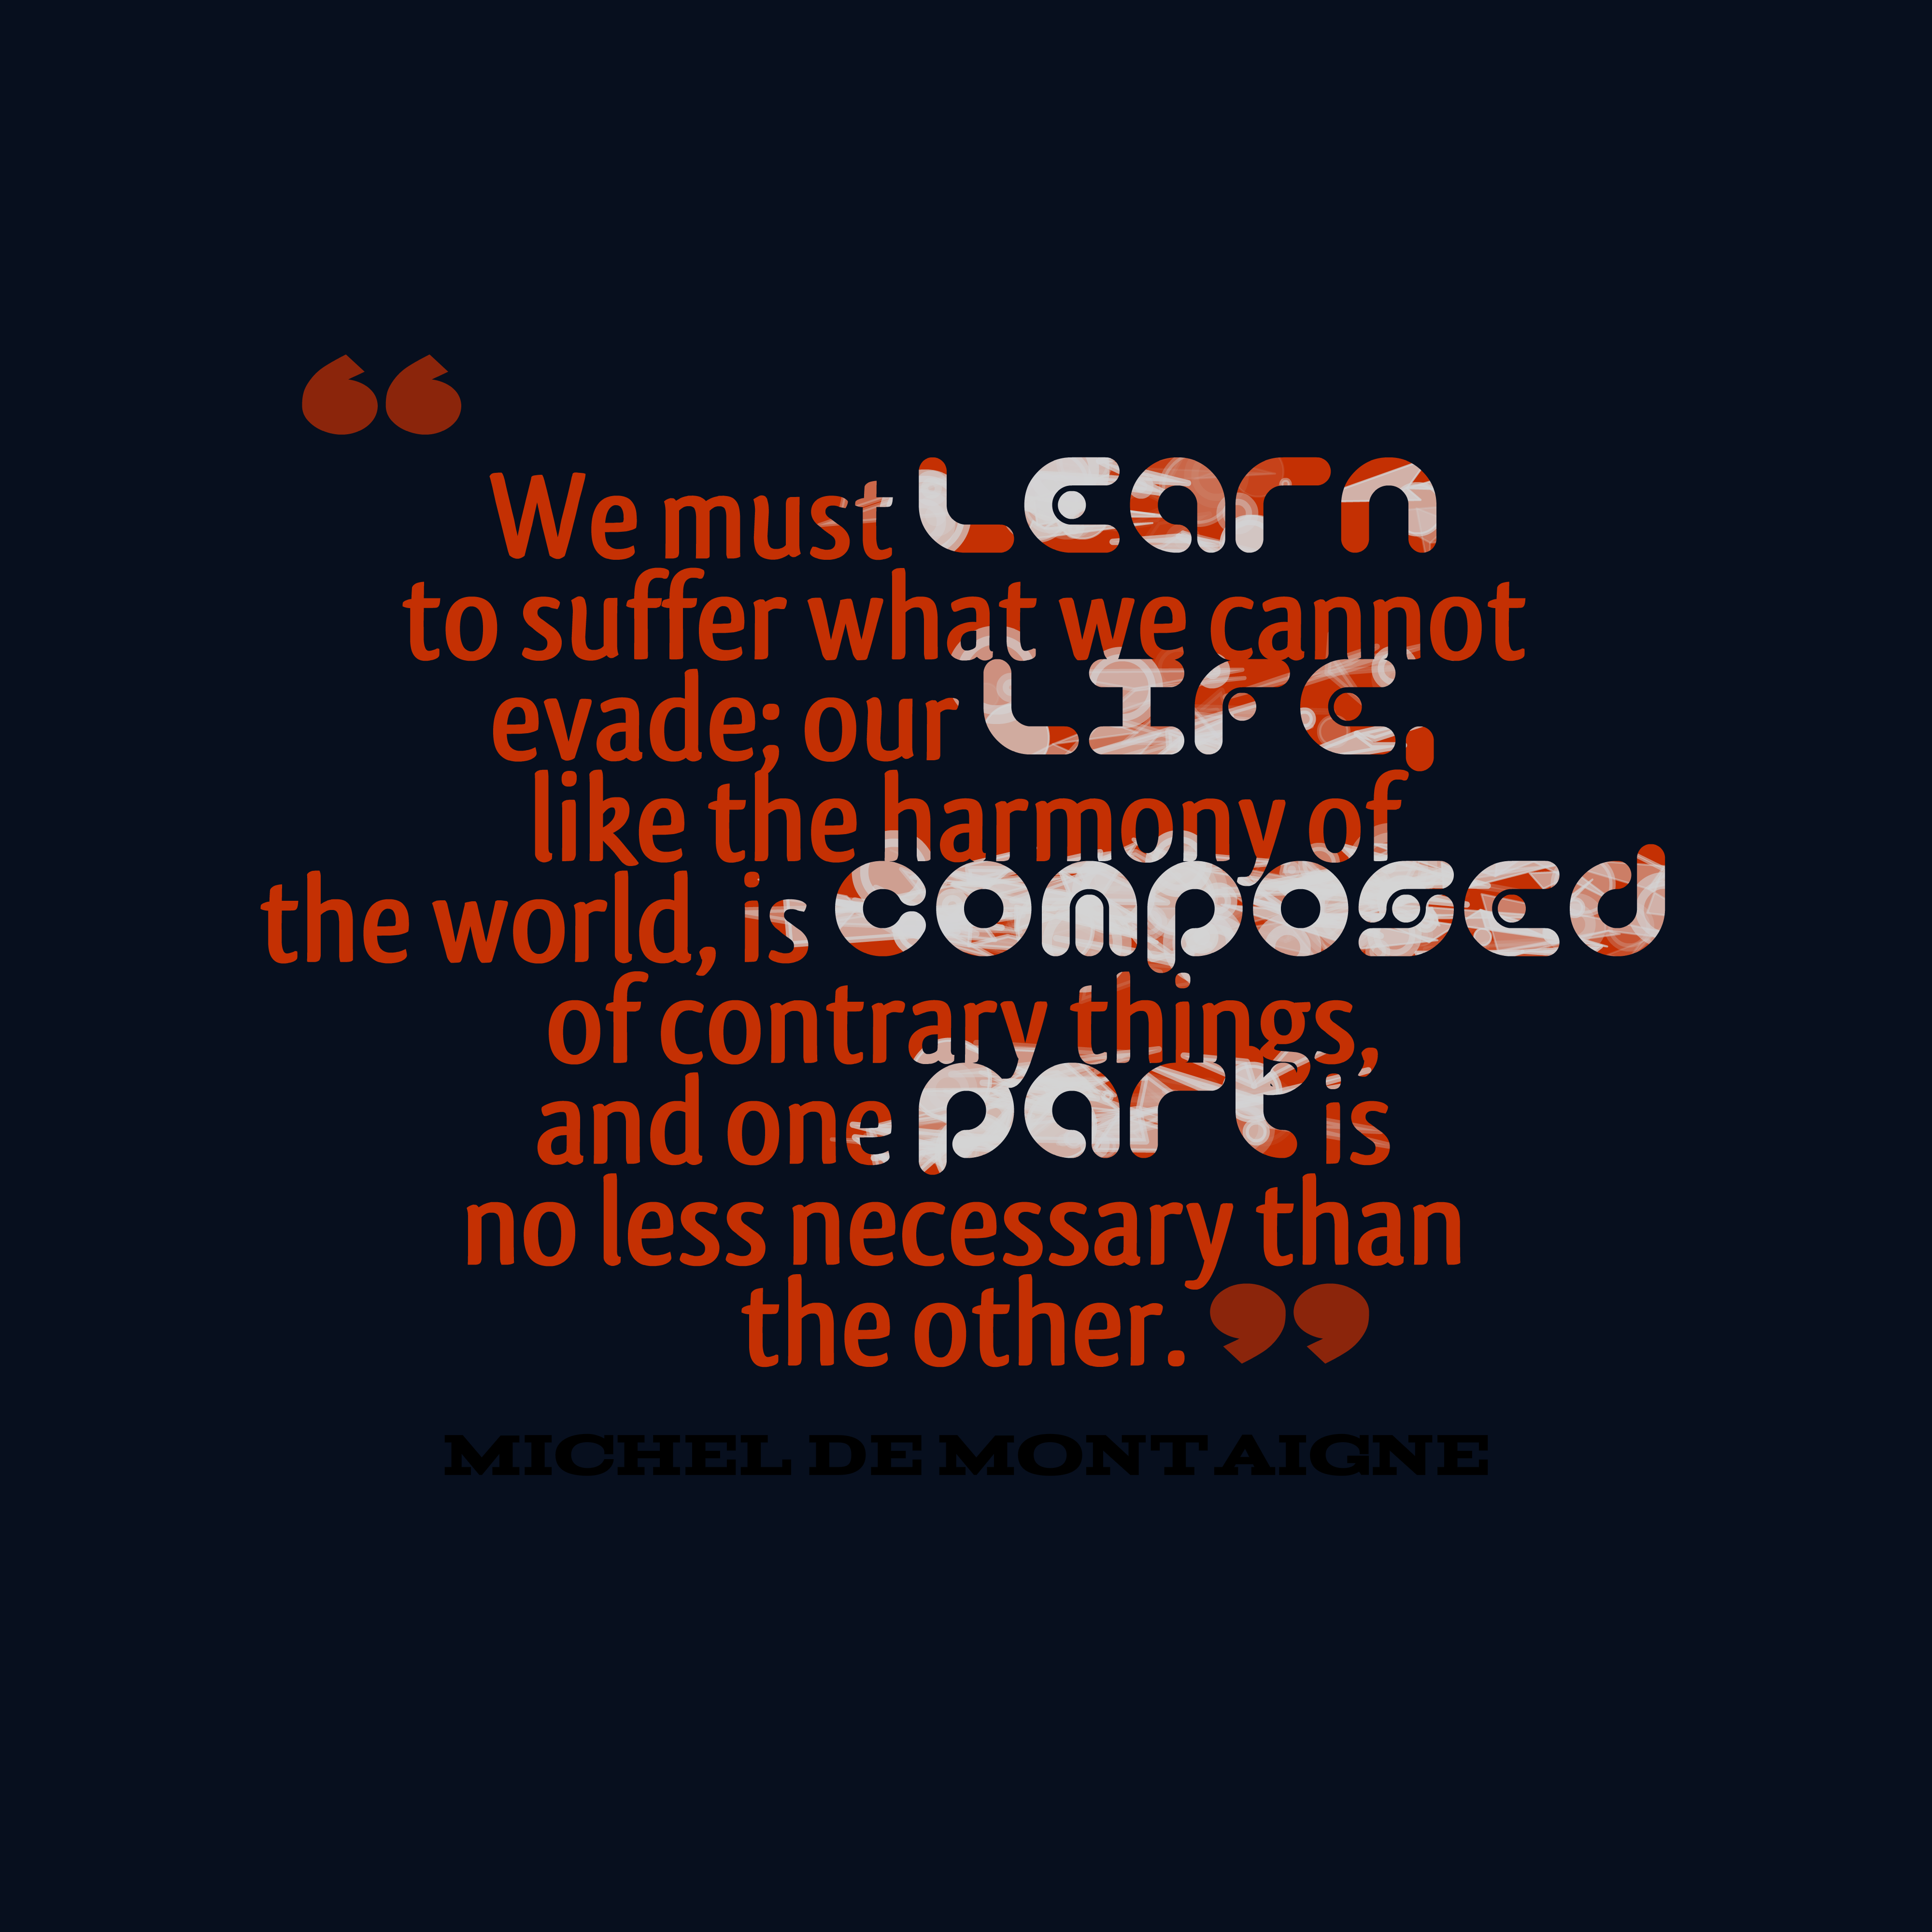 Quotes image of We must learn to suffer what we cannot evade; our life, like the harmony of the world, is composed of contrary things, and one part is no less necessary than the other.